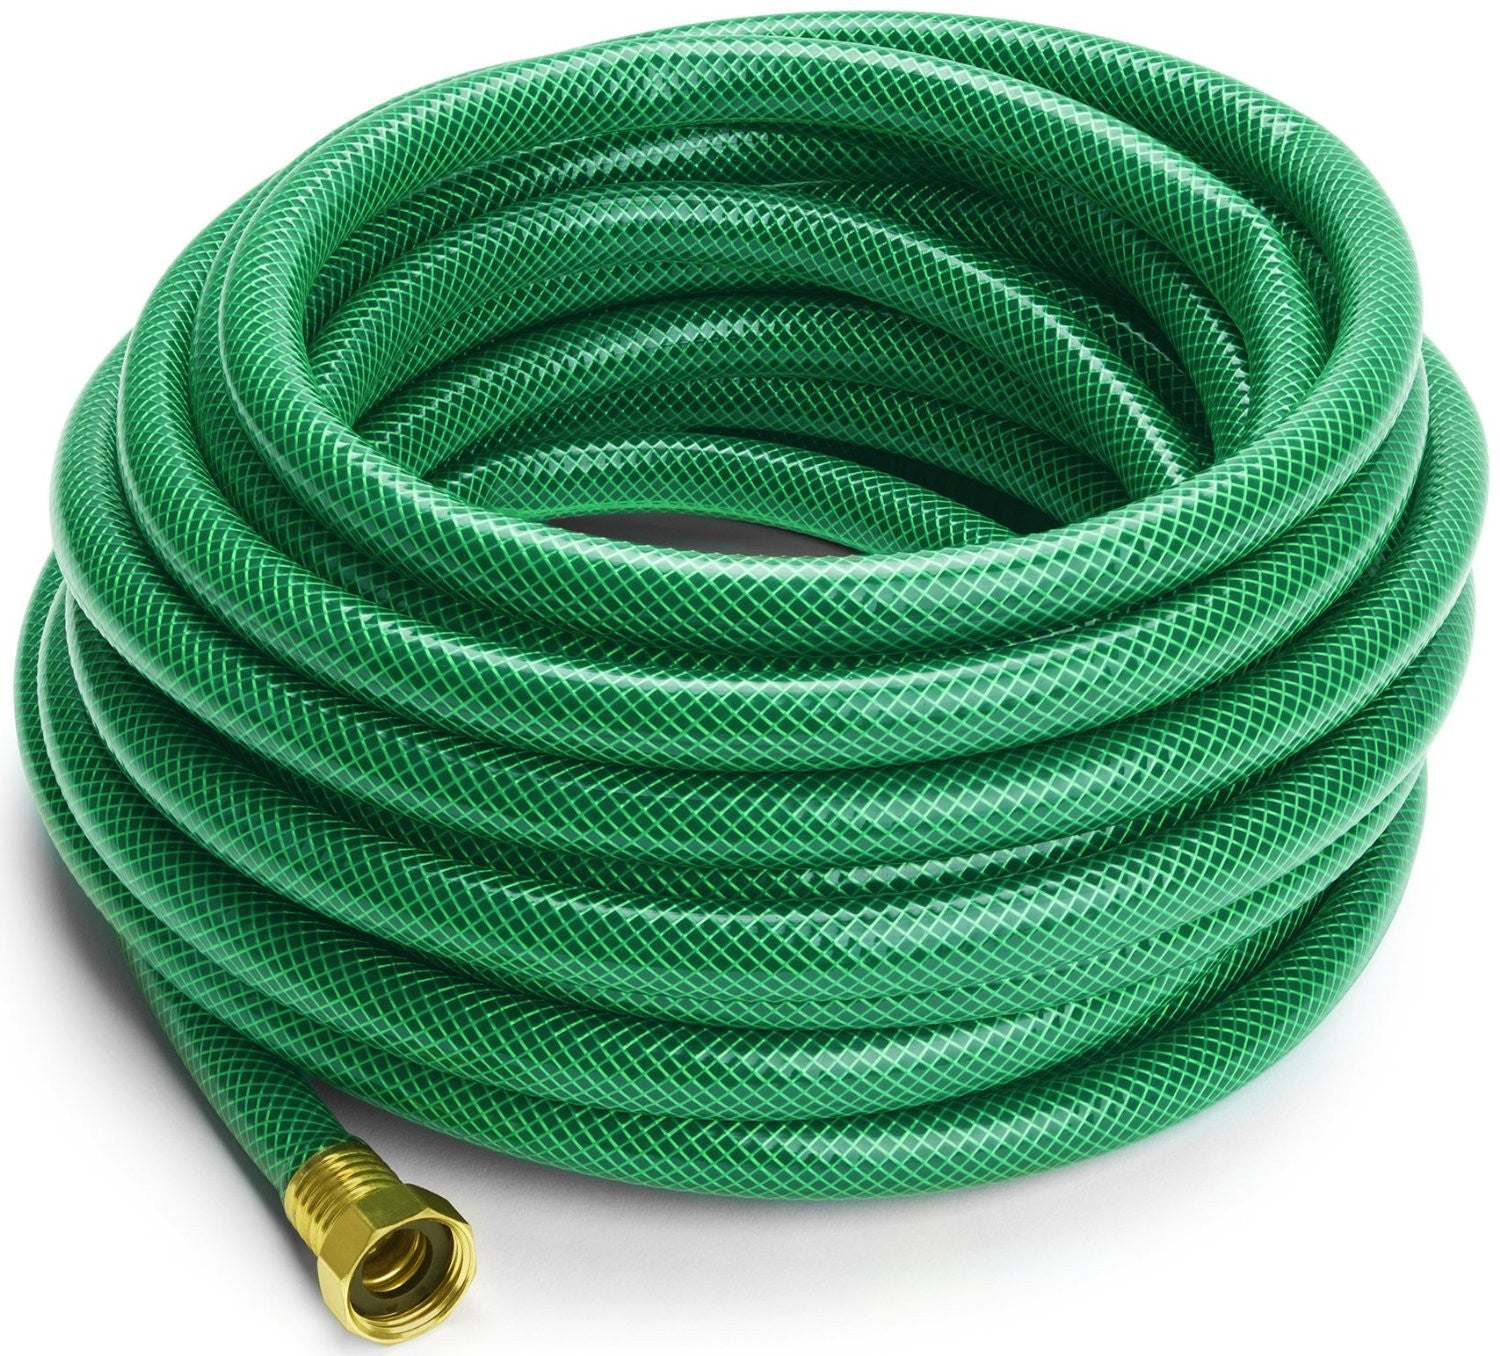 Ultra Flexible Garden Hose - 50 Feet